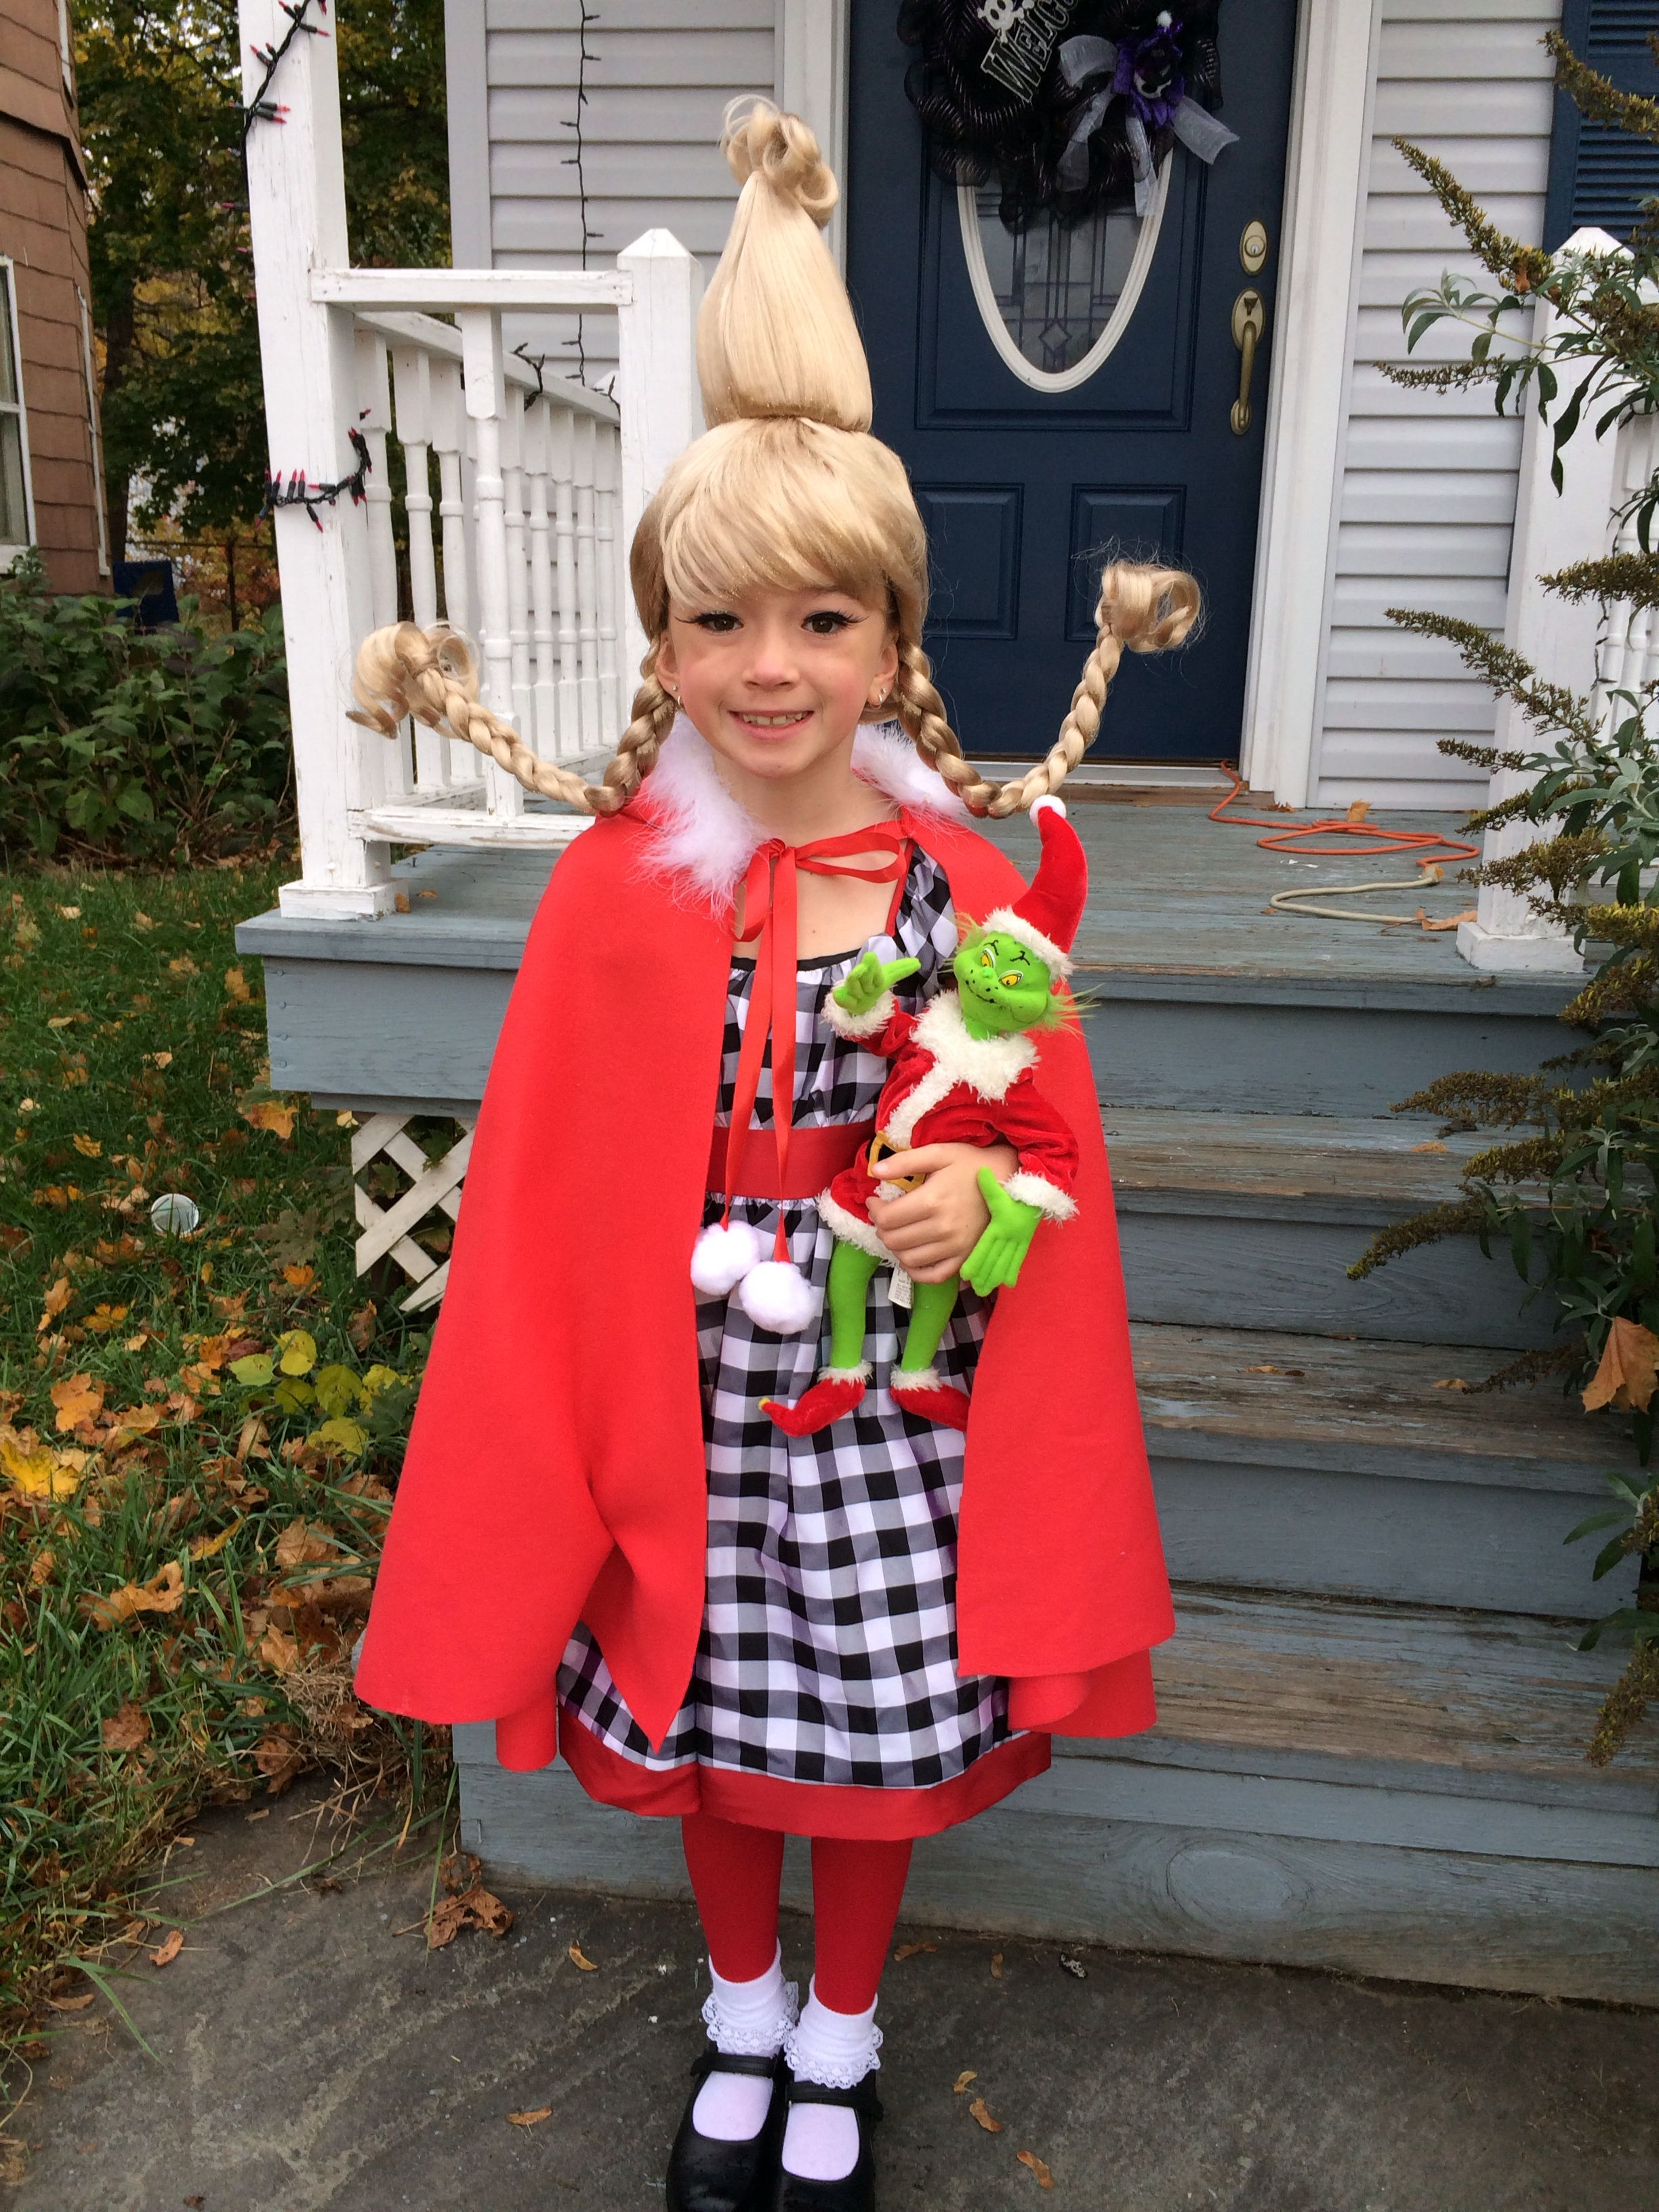 Cindy lou who costume … Cindy lou who costume, Christmas